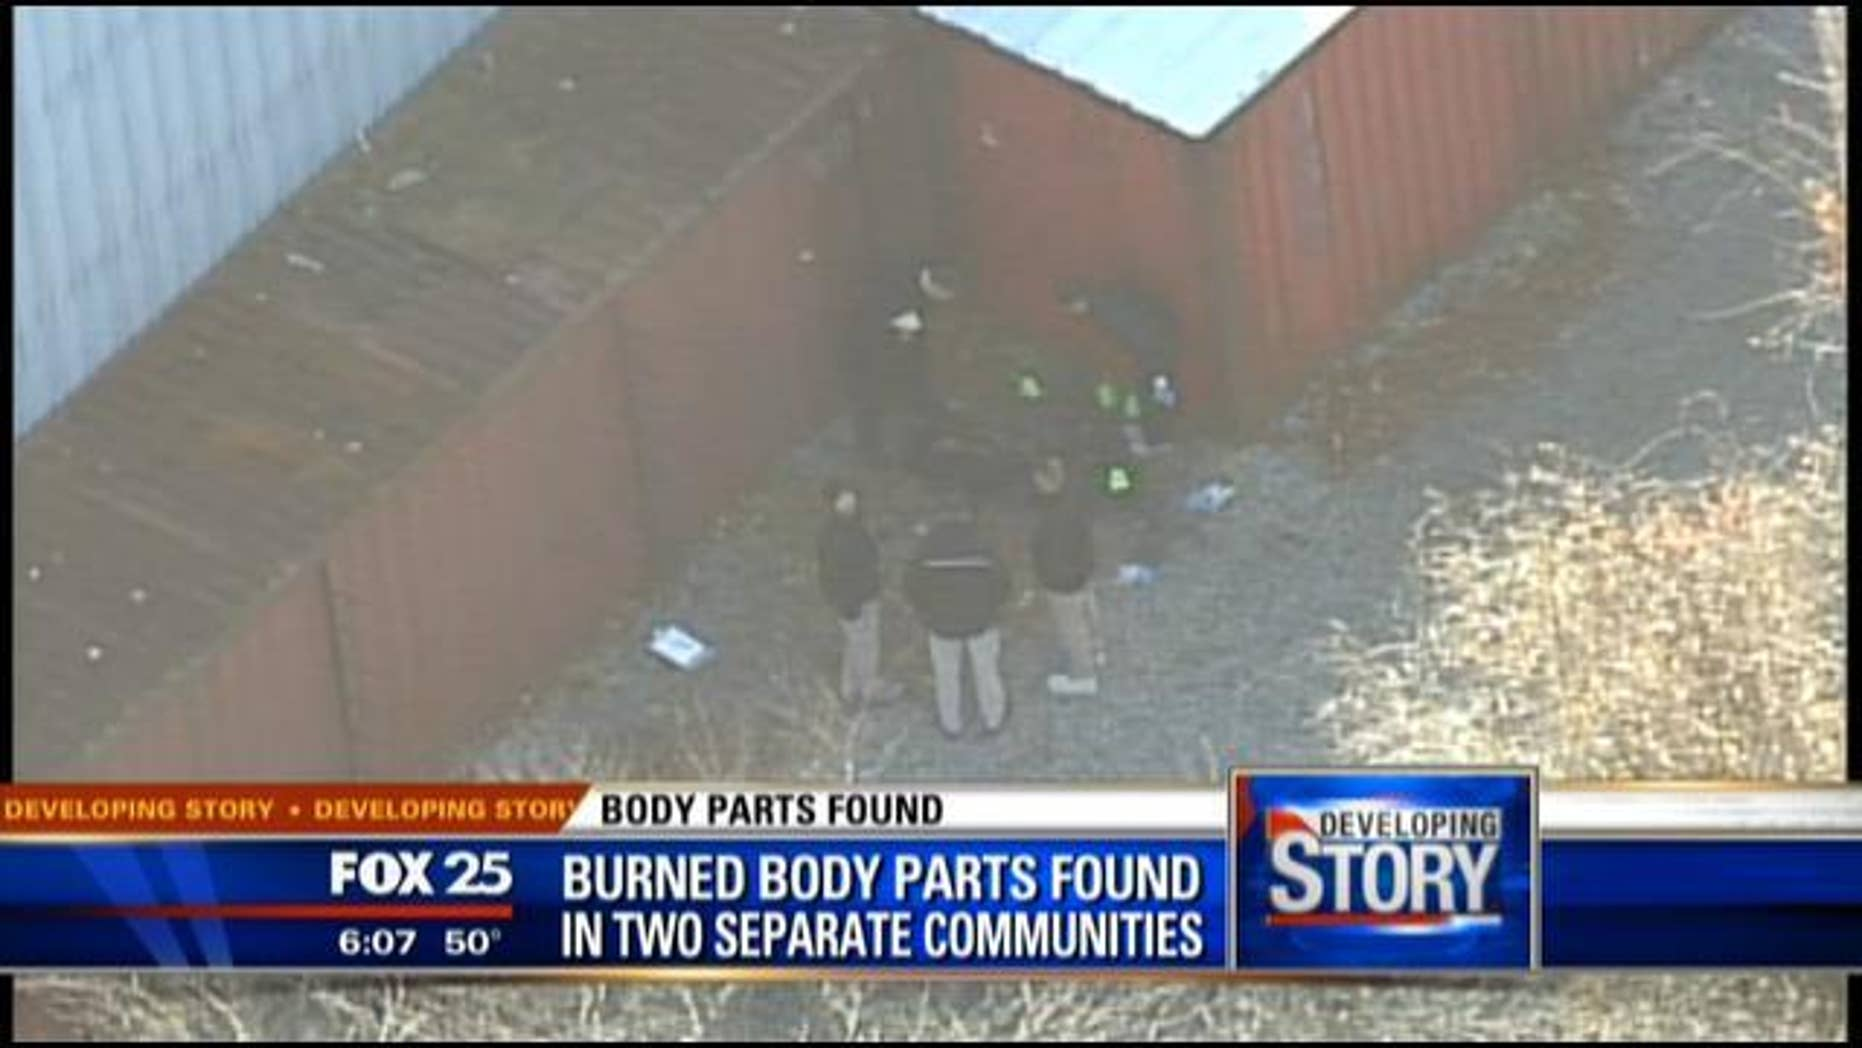 Investigators surround one of two sites where burned body parts were found in Massachusetts last week. The family of 24-year-old Dennis Ray Jackson believe the remains are his, and a 25-year-old aspiring rapper is under investigation (MyFoxBoston.com)